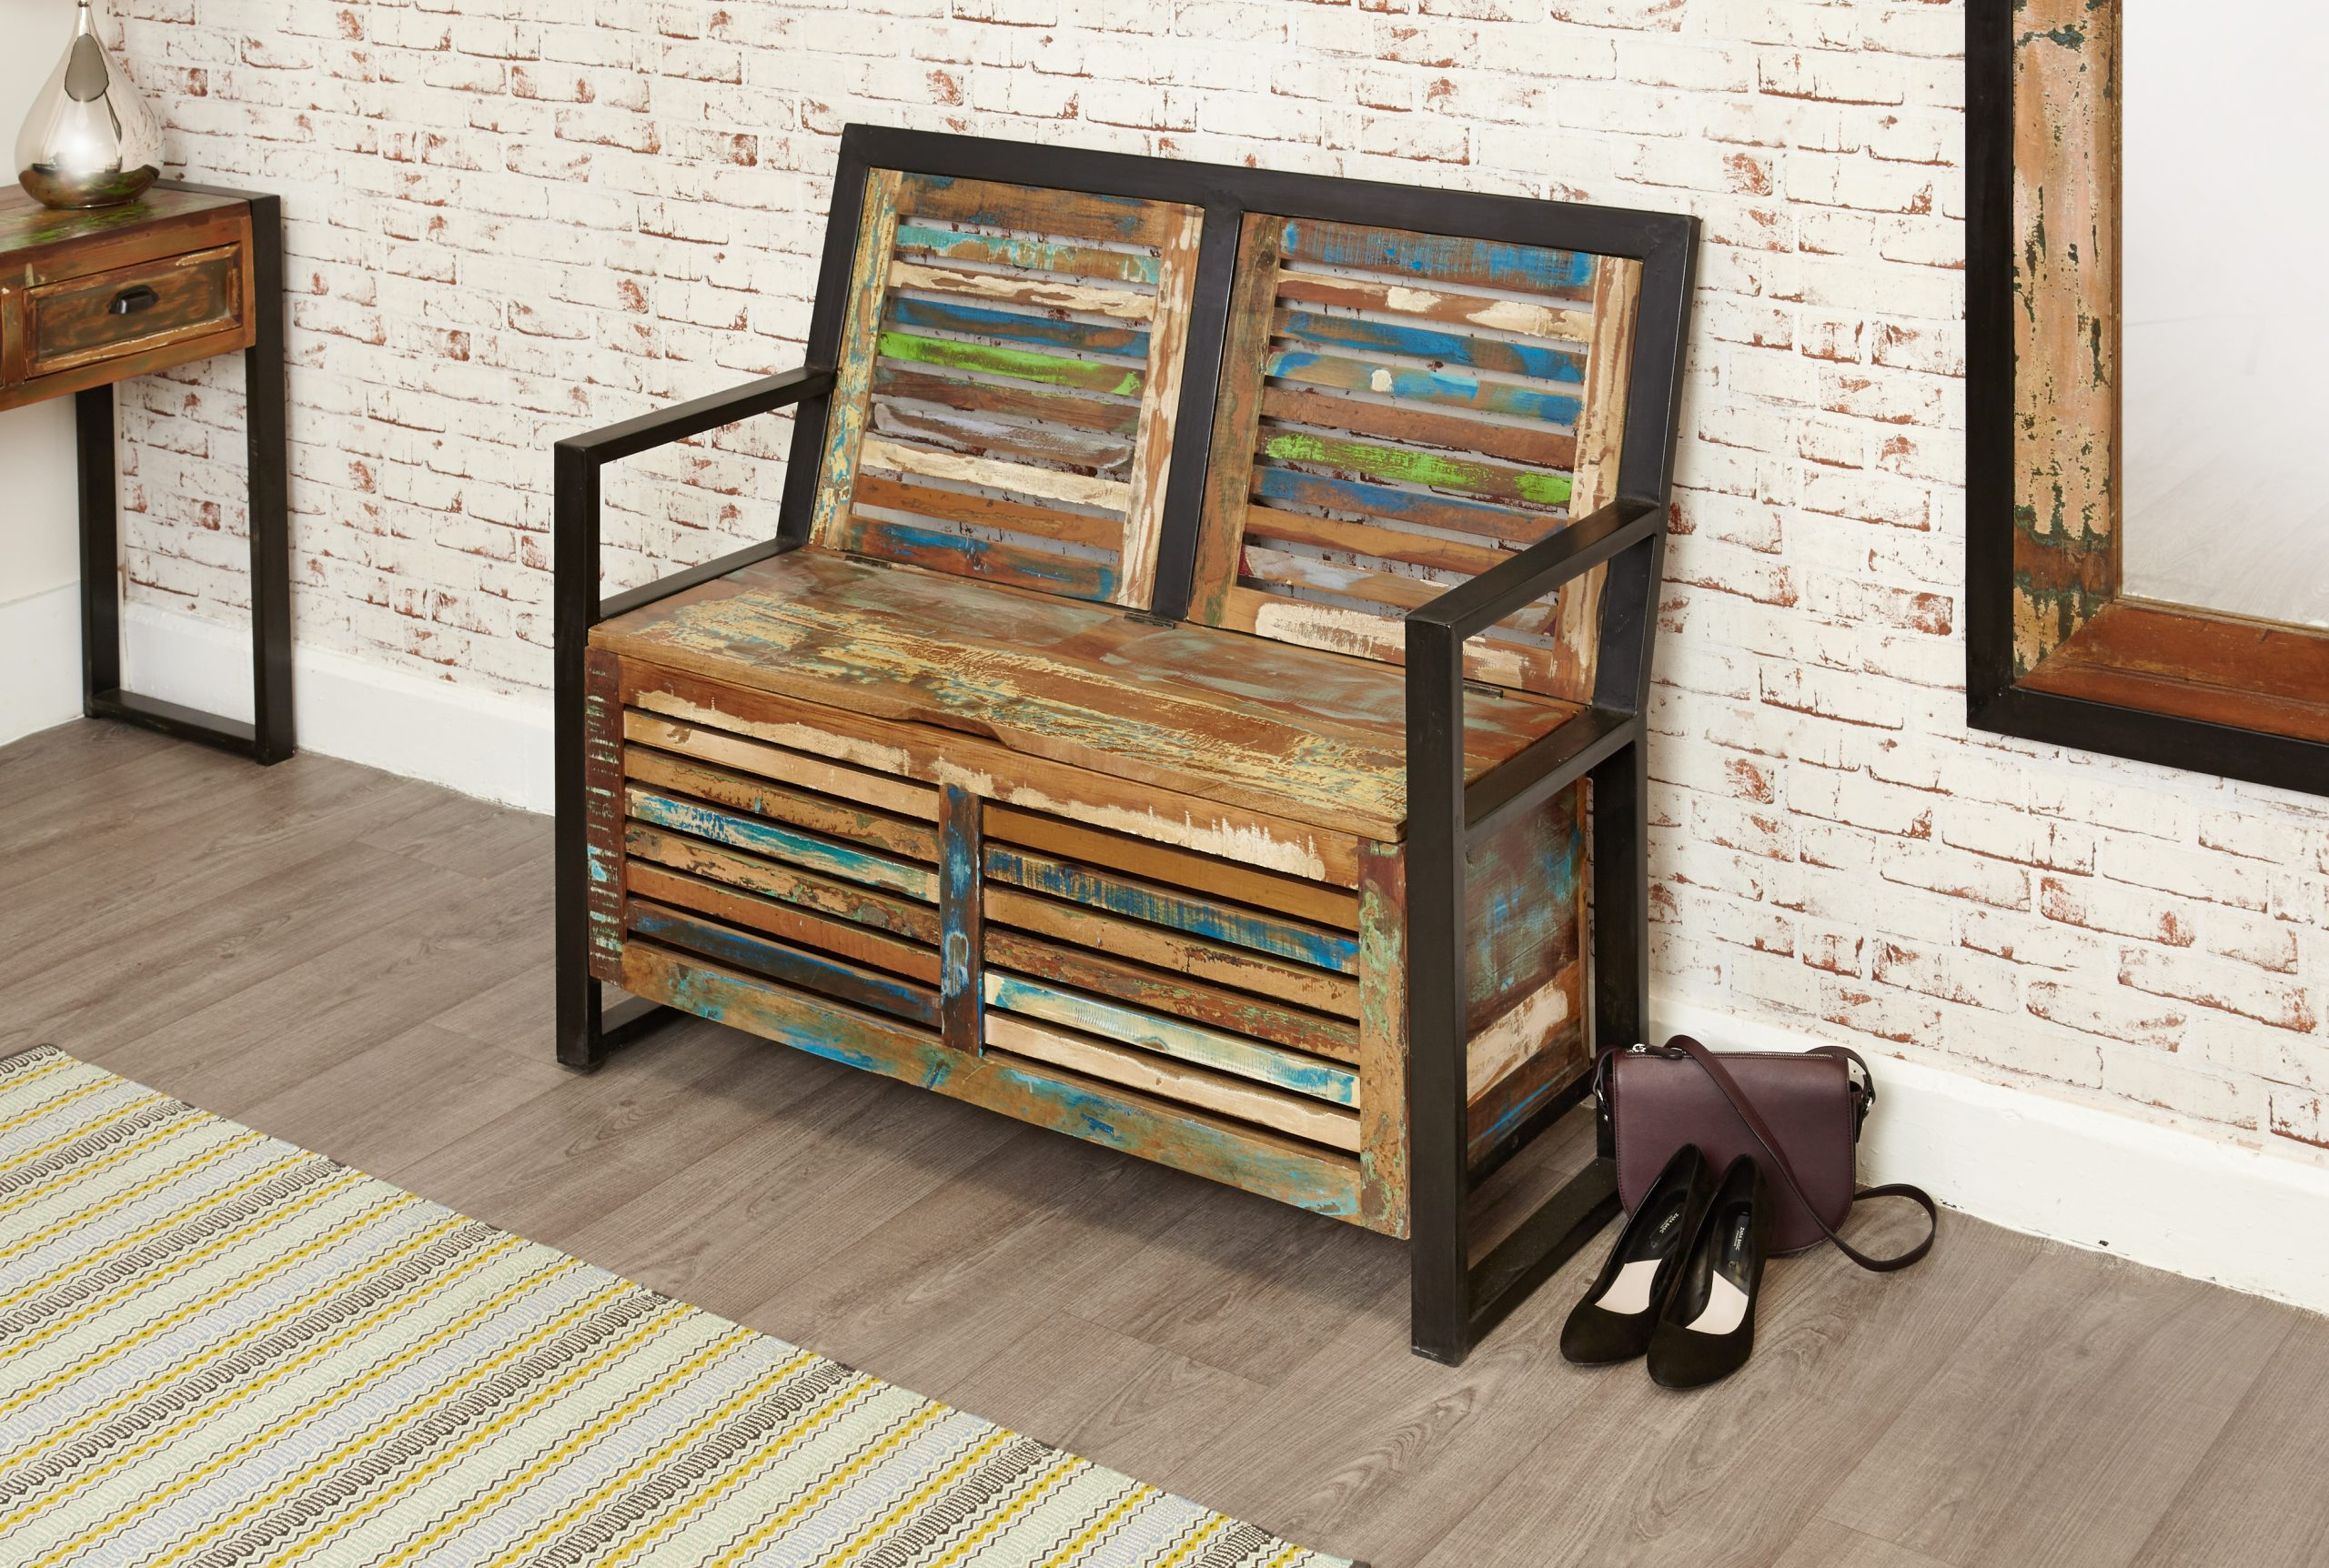 Monks bench with storage space